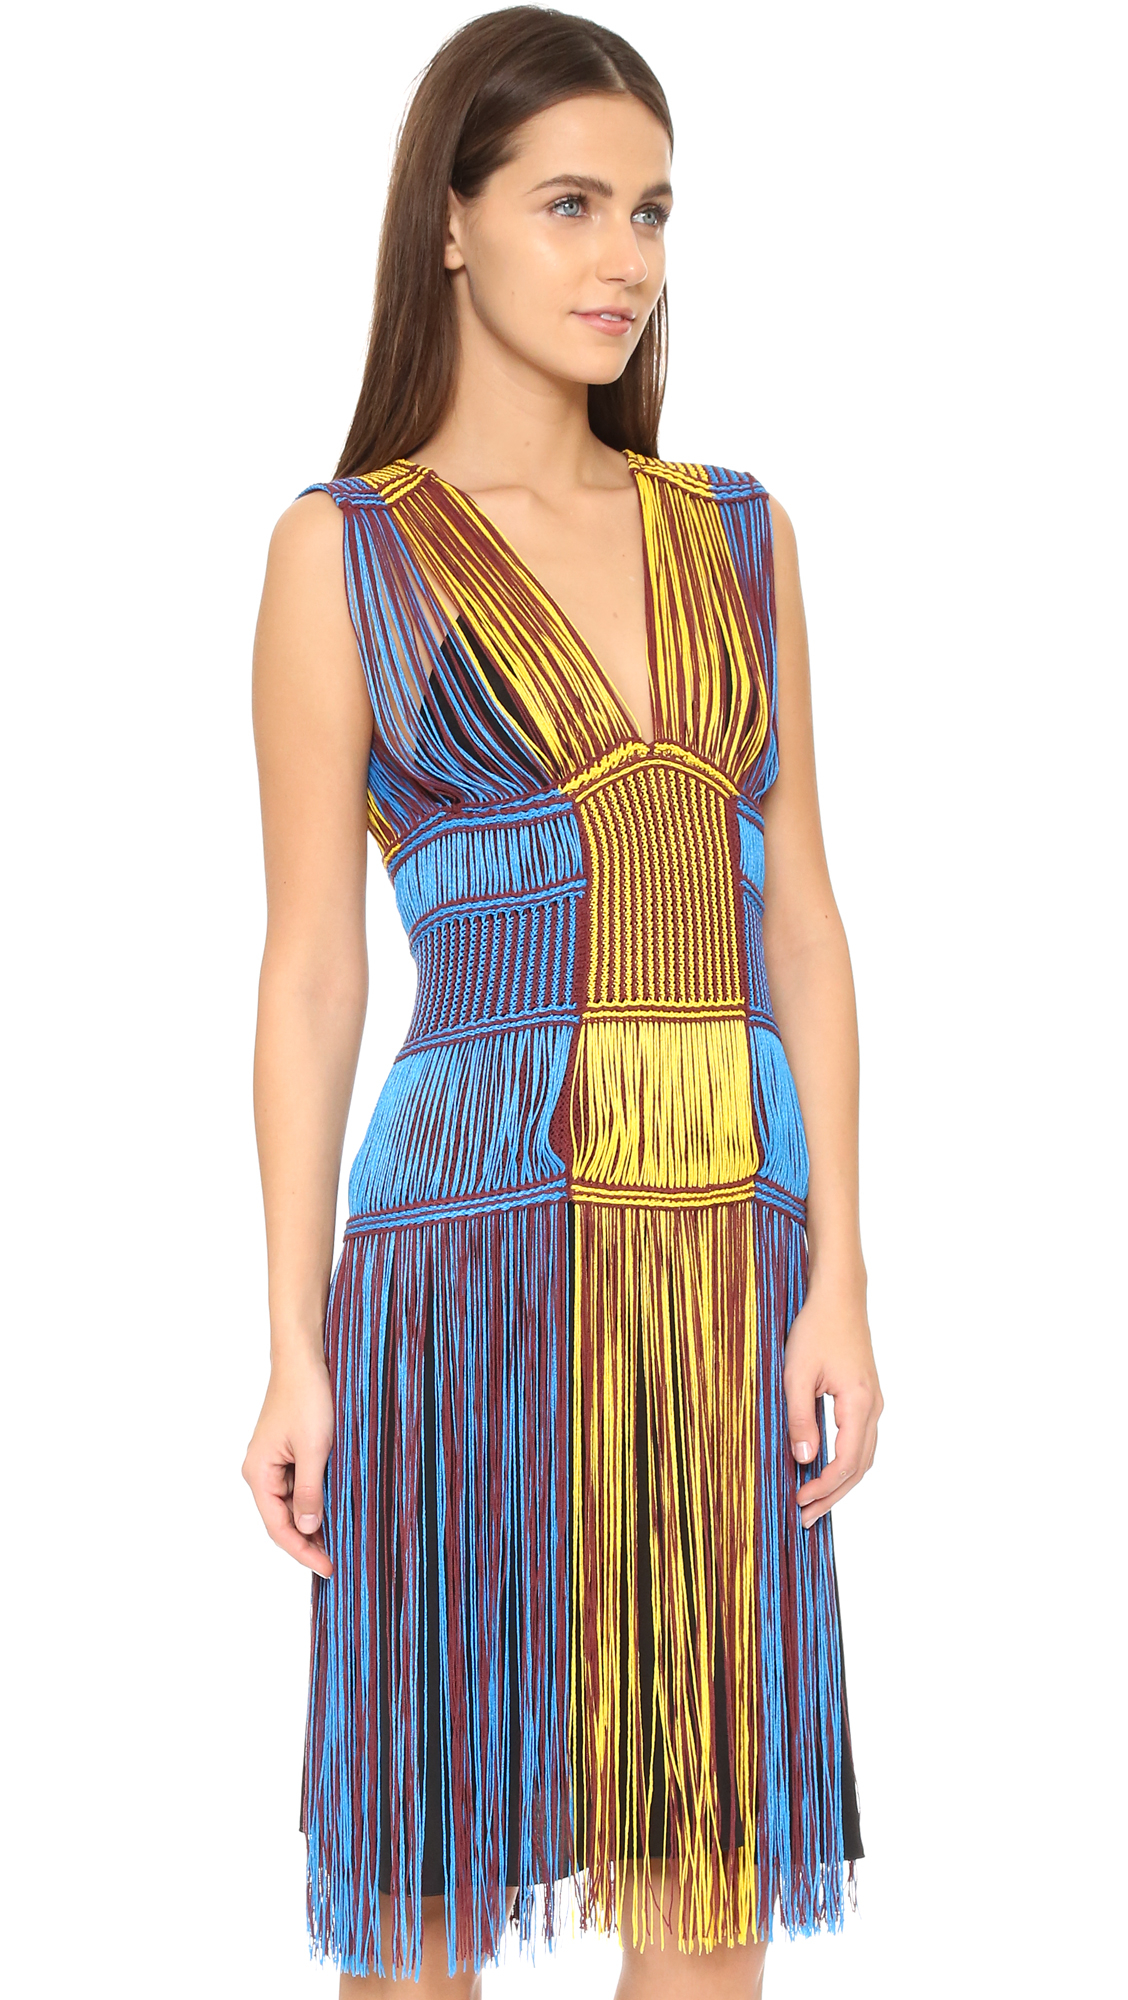 M missoni yellow dress.